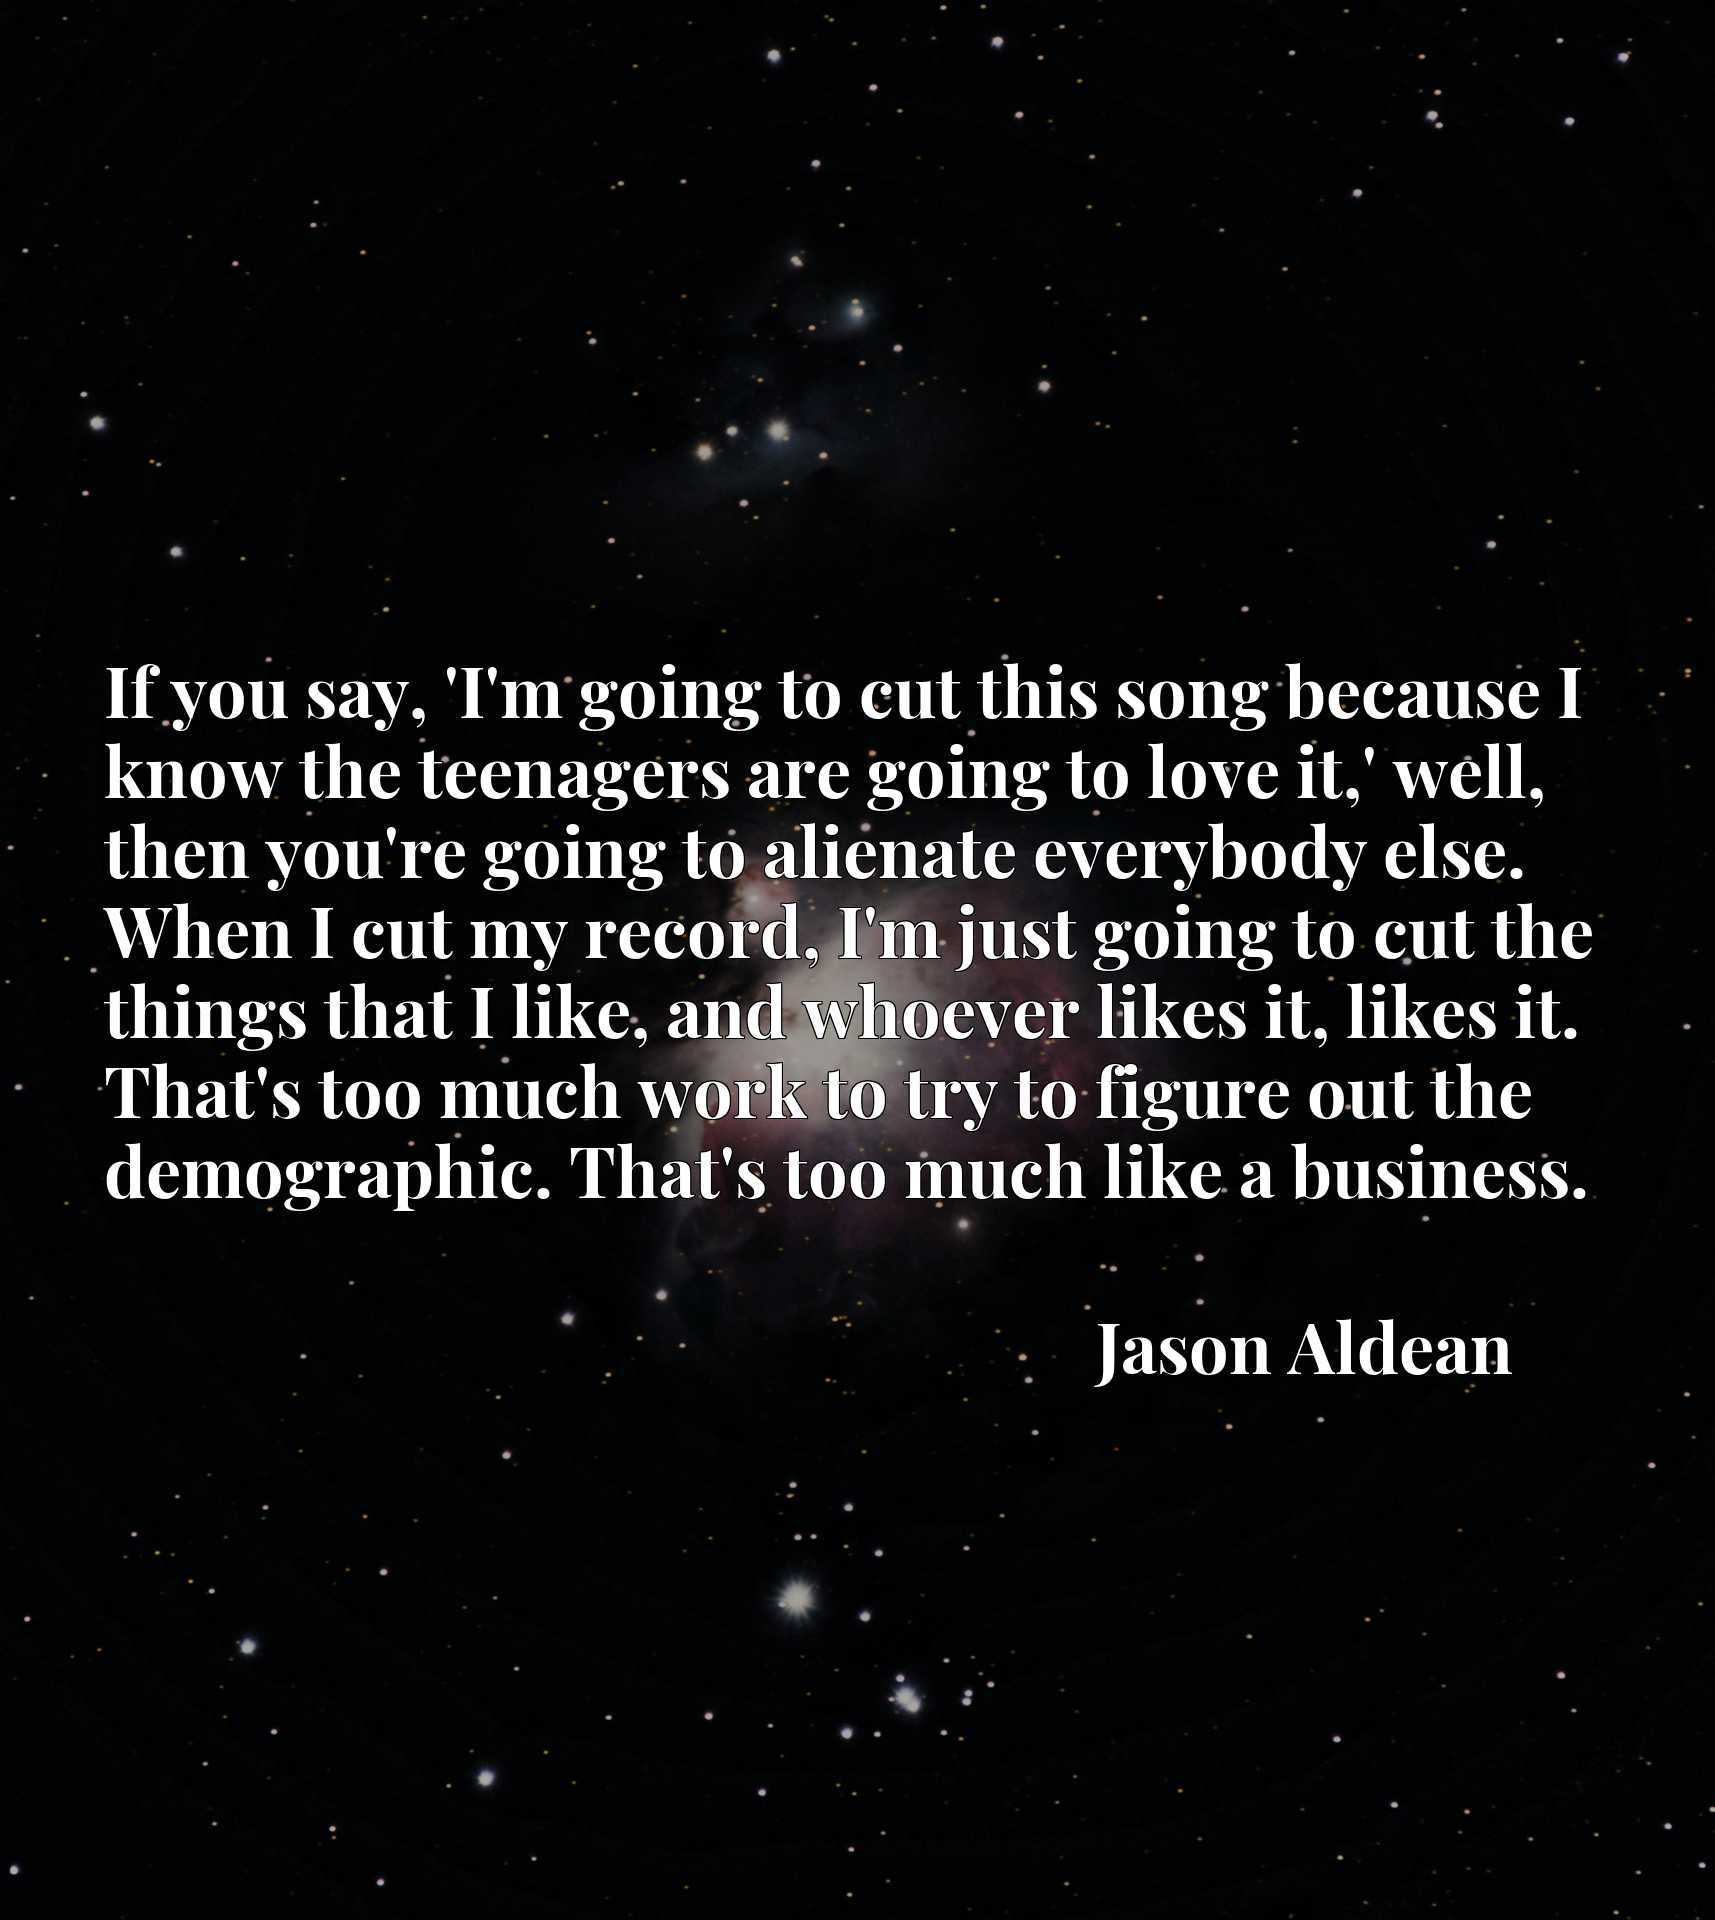 If you say, 'I'm going to cut this song because I know the teenagers are going to love it,' well, then you're going to alienate everybody else. When I cut my record, I'm just going to cut the things that I like, and whoever likes it, likes it. That's too much work to try to figure out the demographic. That's too much like a business.